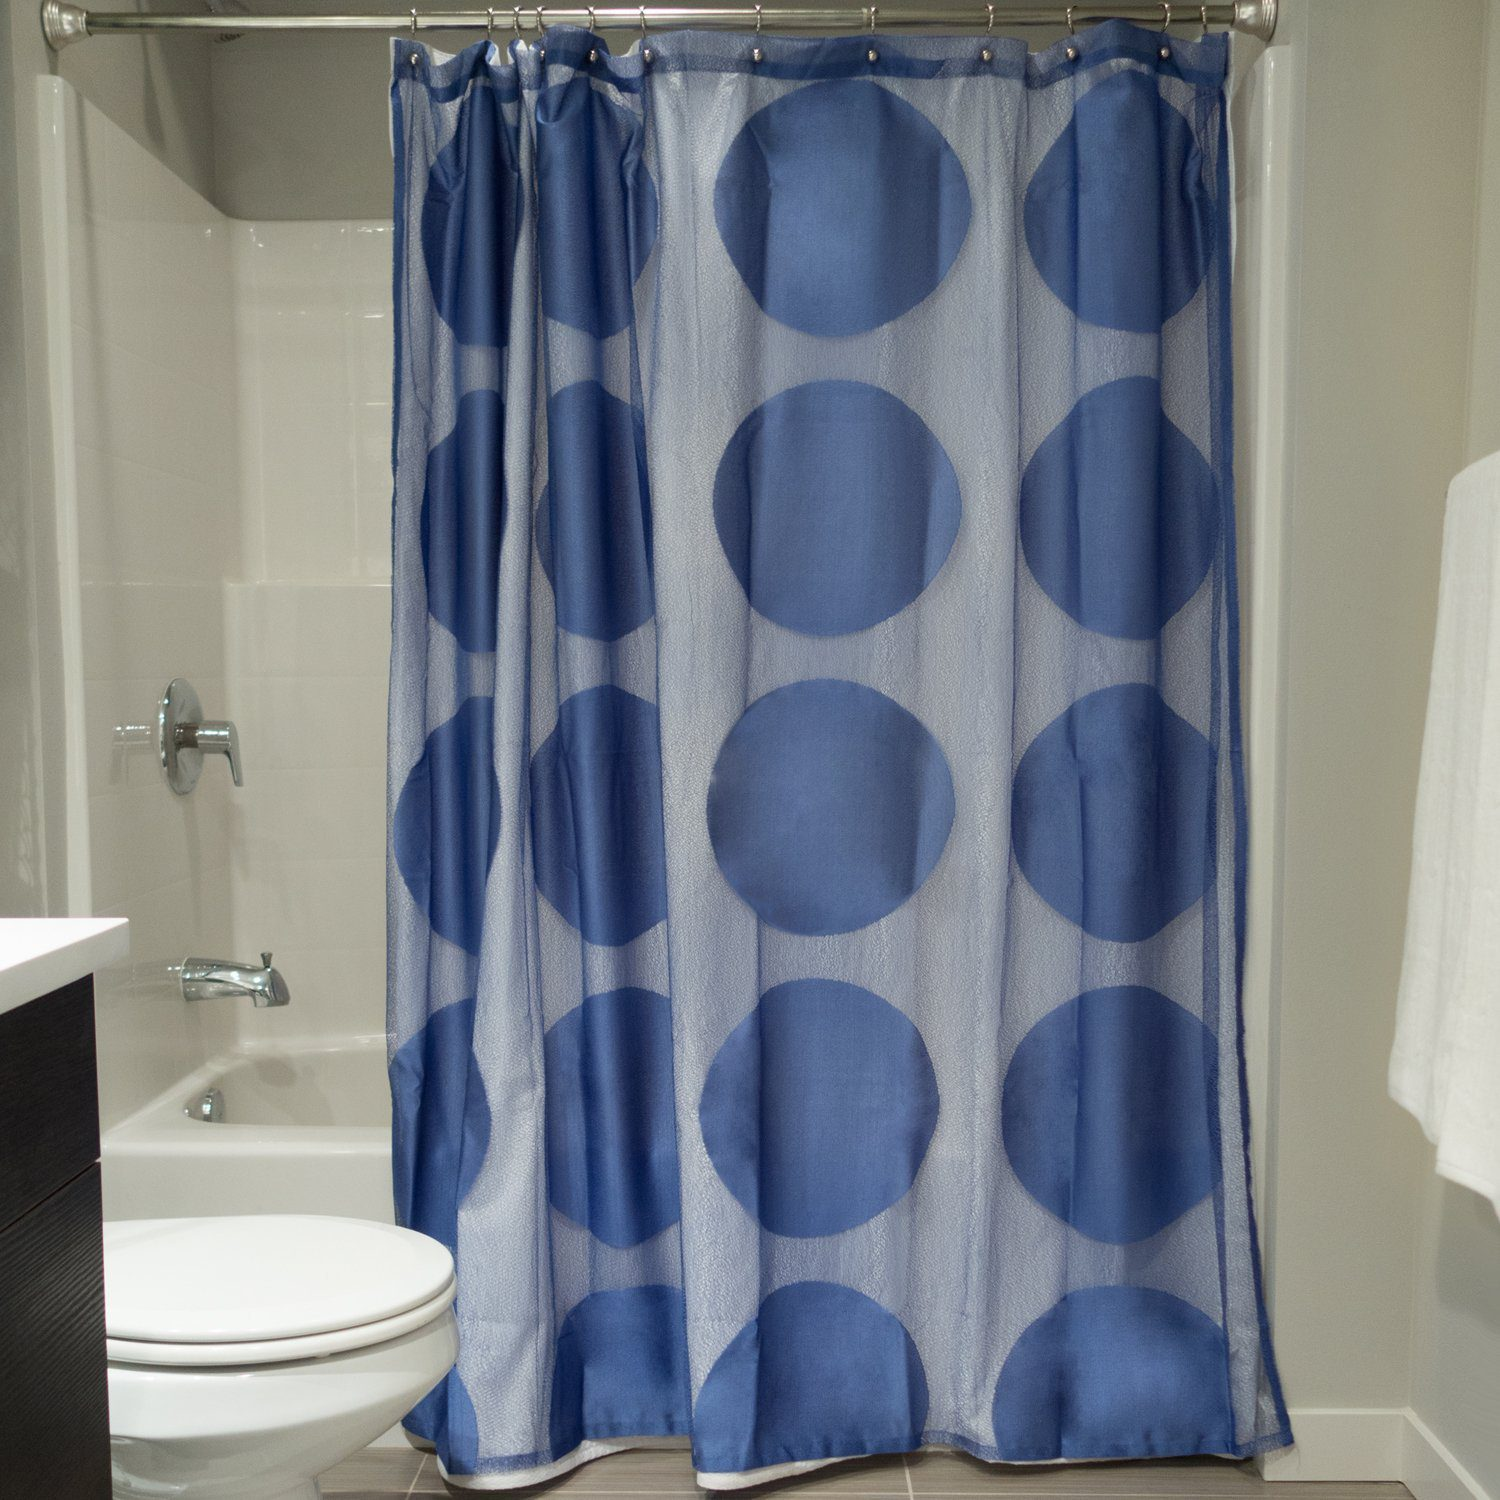 100% Polyester Extra Long Bath Fabric Shower Curtain 72x72